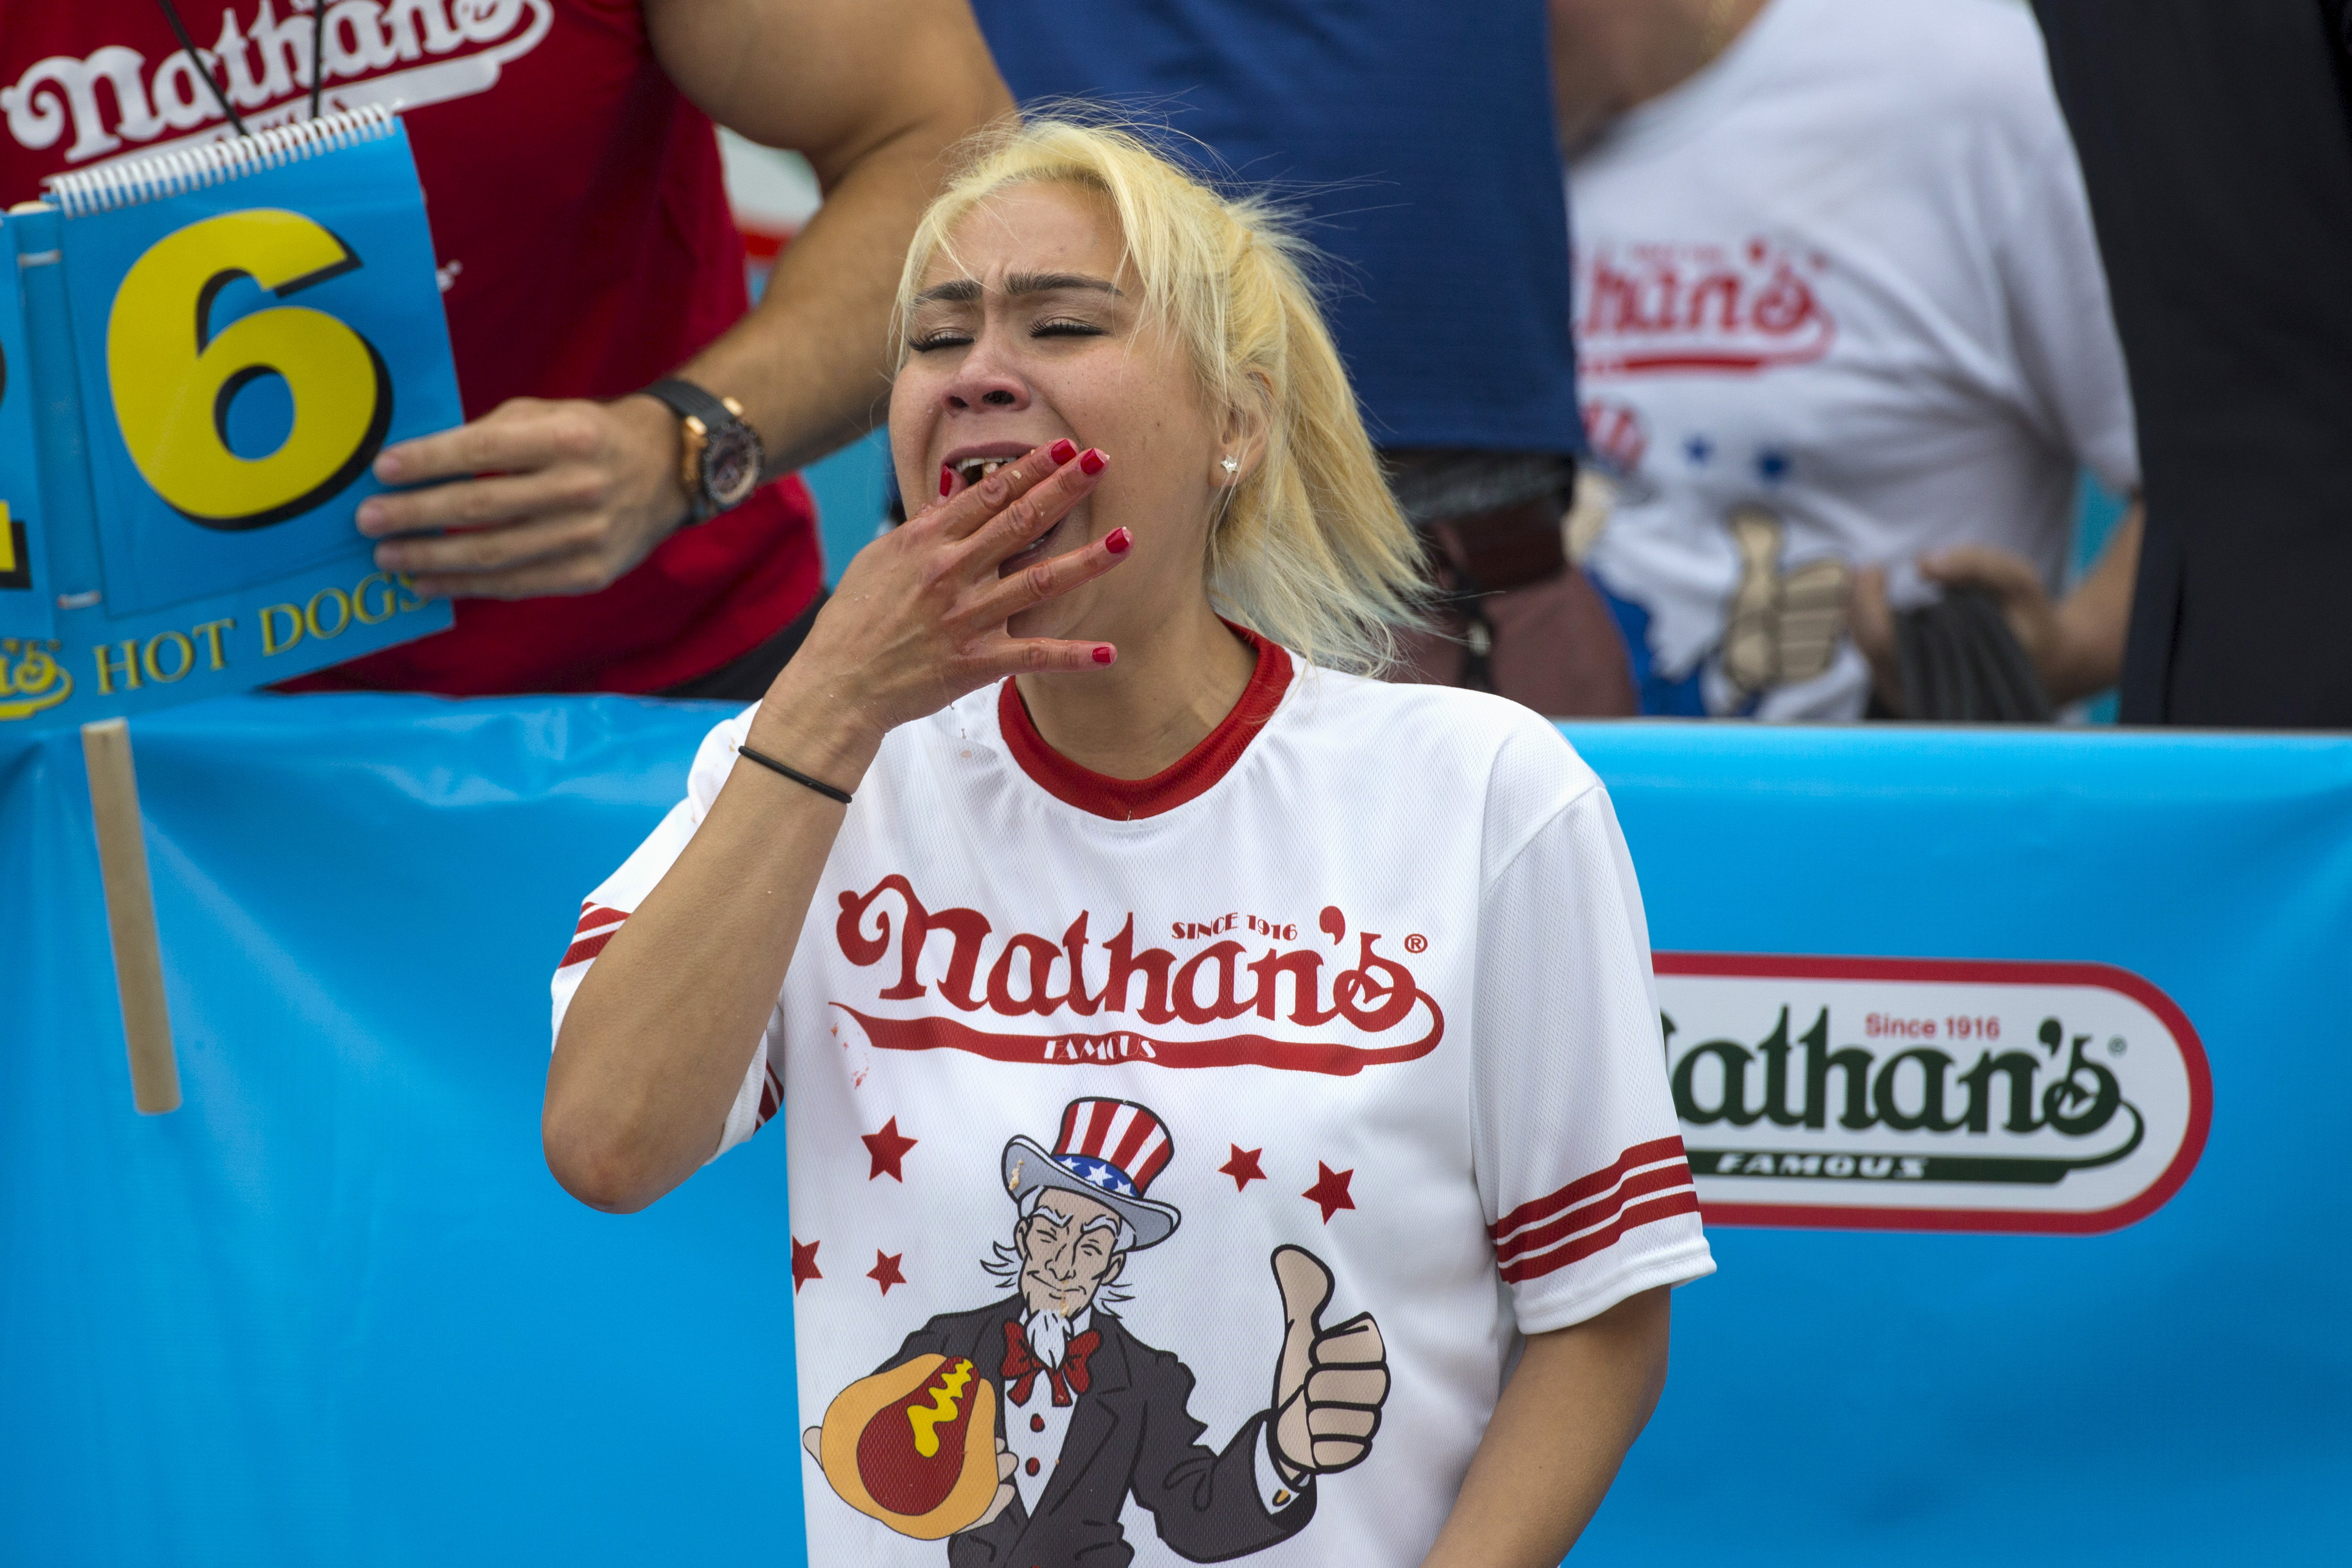 Miki Sudo, winner of Nathan's Famous Hot Dog Eating Contest in the Women's division, eats a hot dog during the competition in Brooklyn, New York July 4, 2015. Sudo finished with a total of 38 hot dogs consumed in ten minutes. REUTERS/Andrew Kelly - RTX1J065